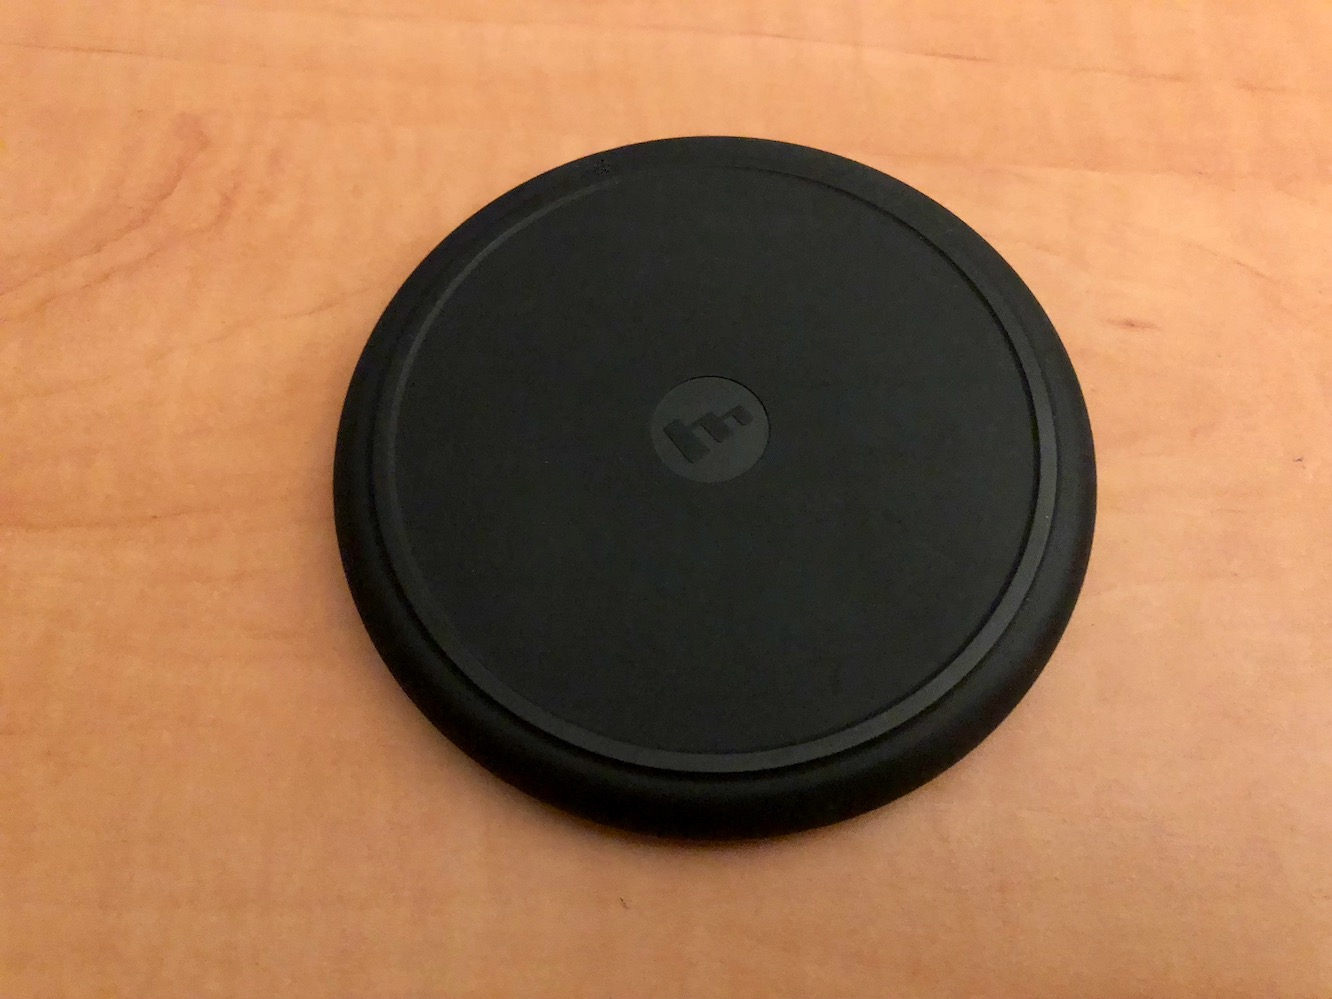 Review: Mophie Wireless Charging Base